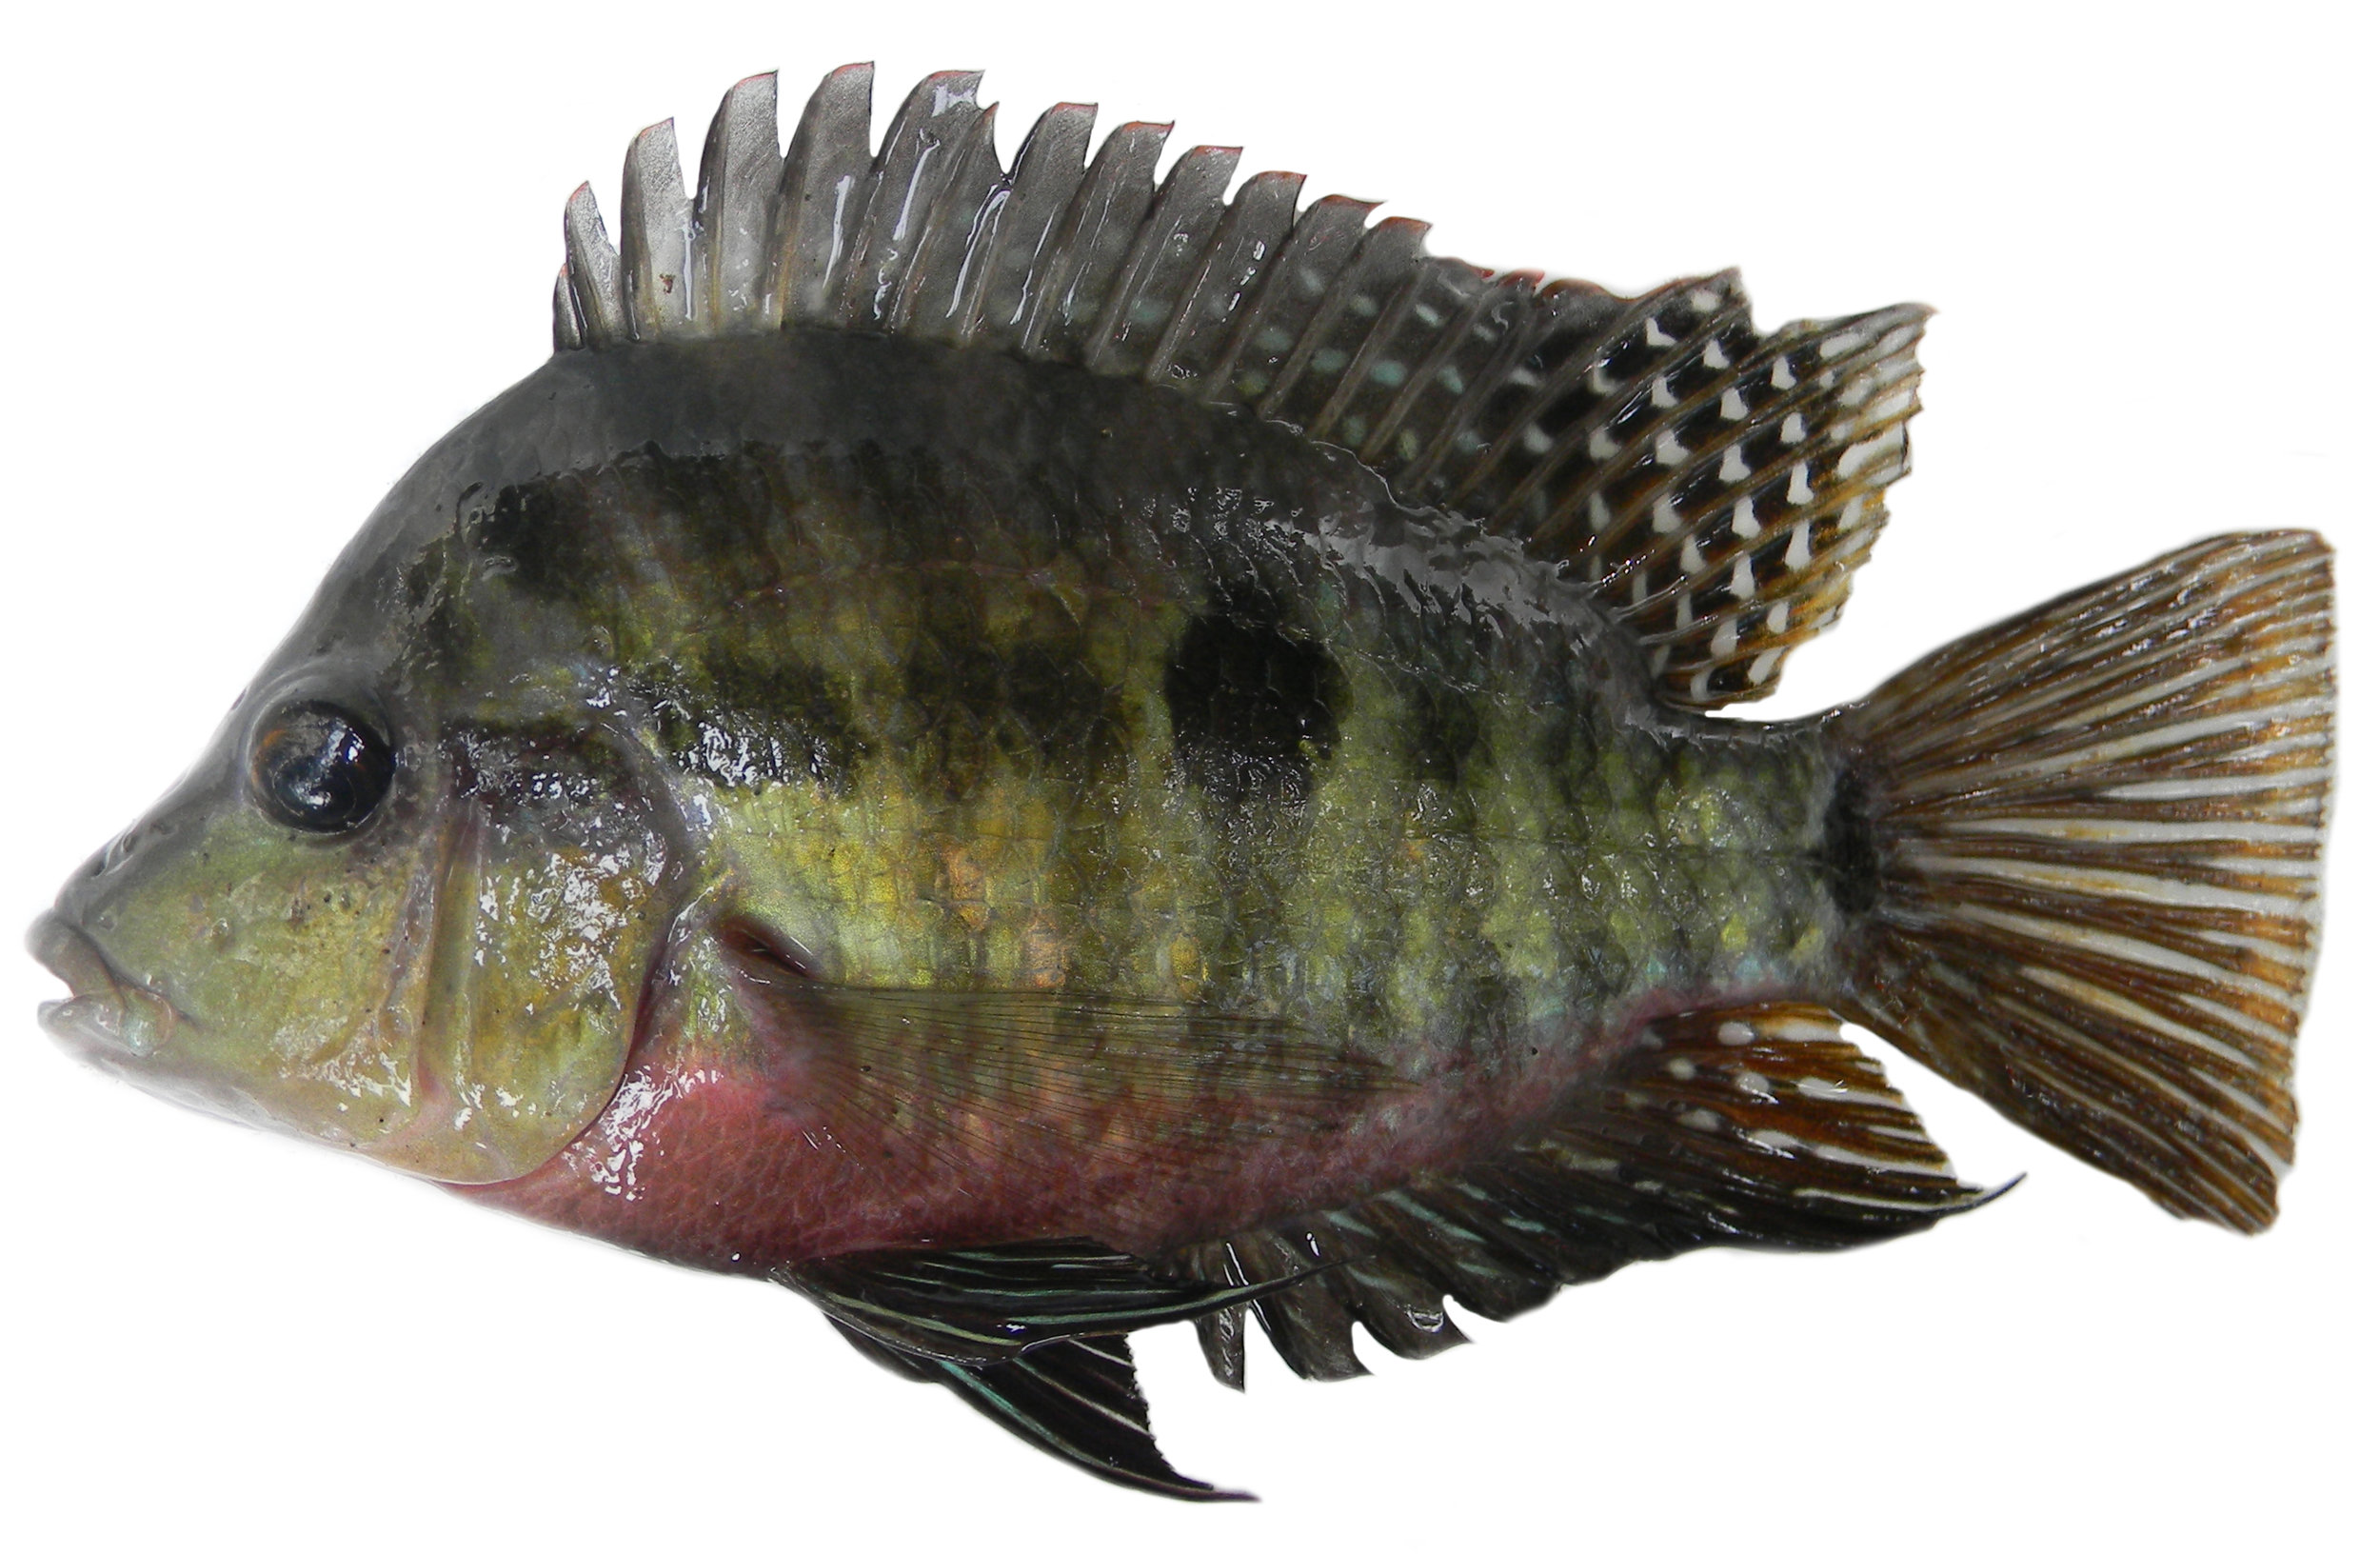 Evolution and Diversification of Cichlids - 16. McMahan, C.D., Chakrabarty, P., Sparks, J.S., Smith, W.L., and Davis, M.P. (2013). Temporal Patterns of Diversification across Global Cichlid Biodiversity (Acanthomorpha: Cichlidae). PLoS ONE. 8(8): e71162.Google ScholarOPEN ACCESS